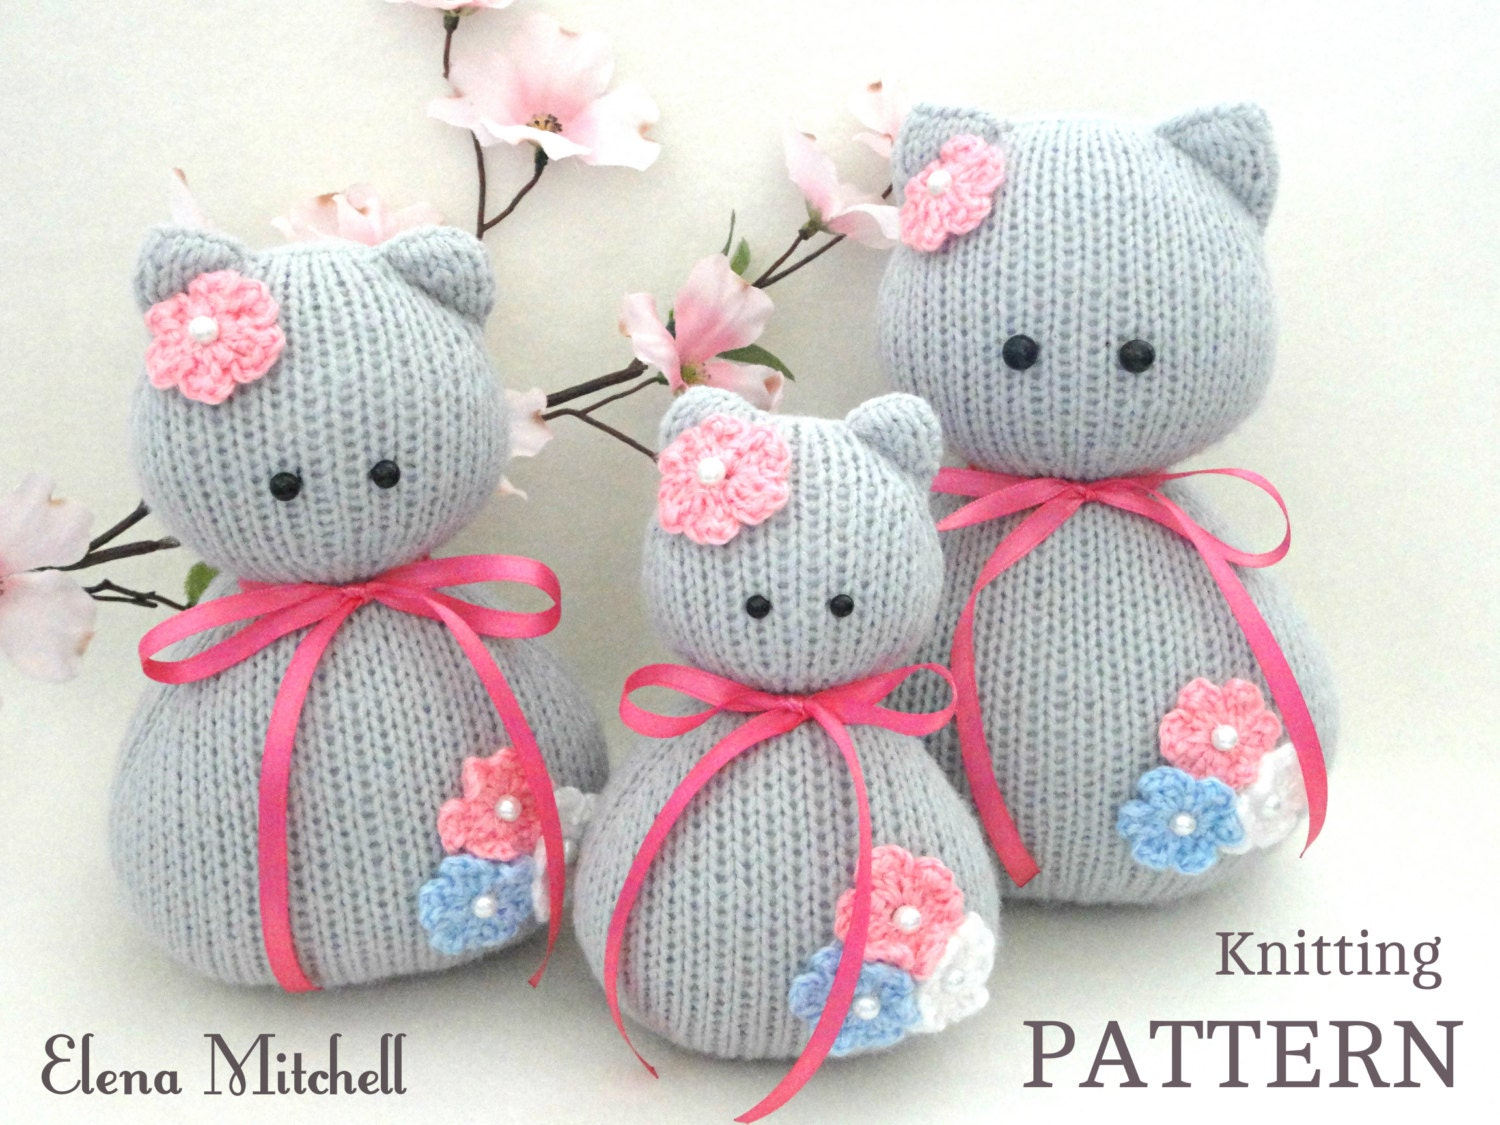 Knitting PATTERN Animal Knit Pattern Cat Animal Patterns Children Toy Knittin...